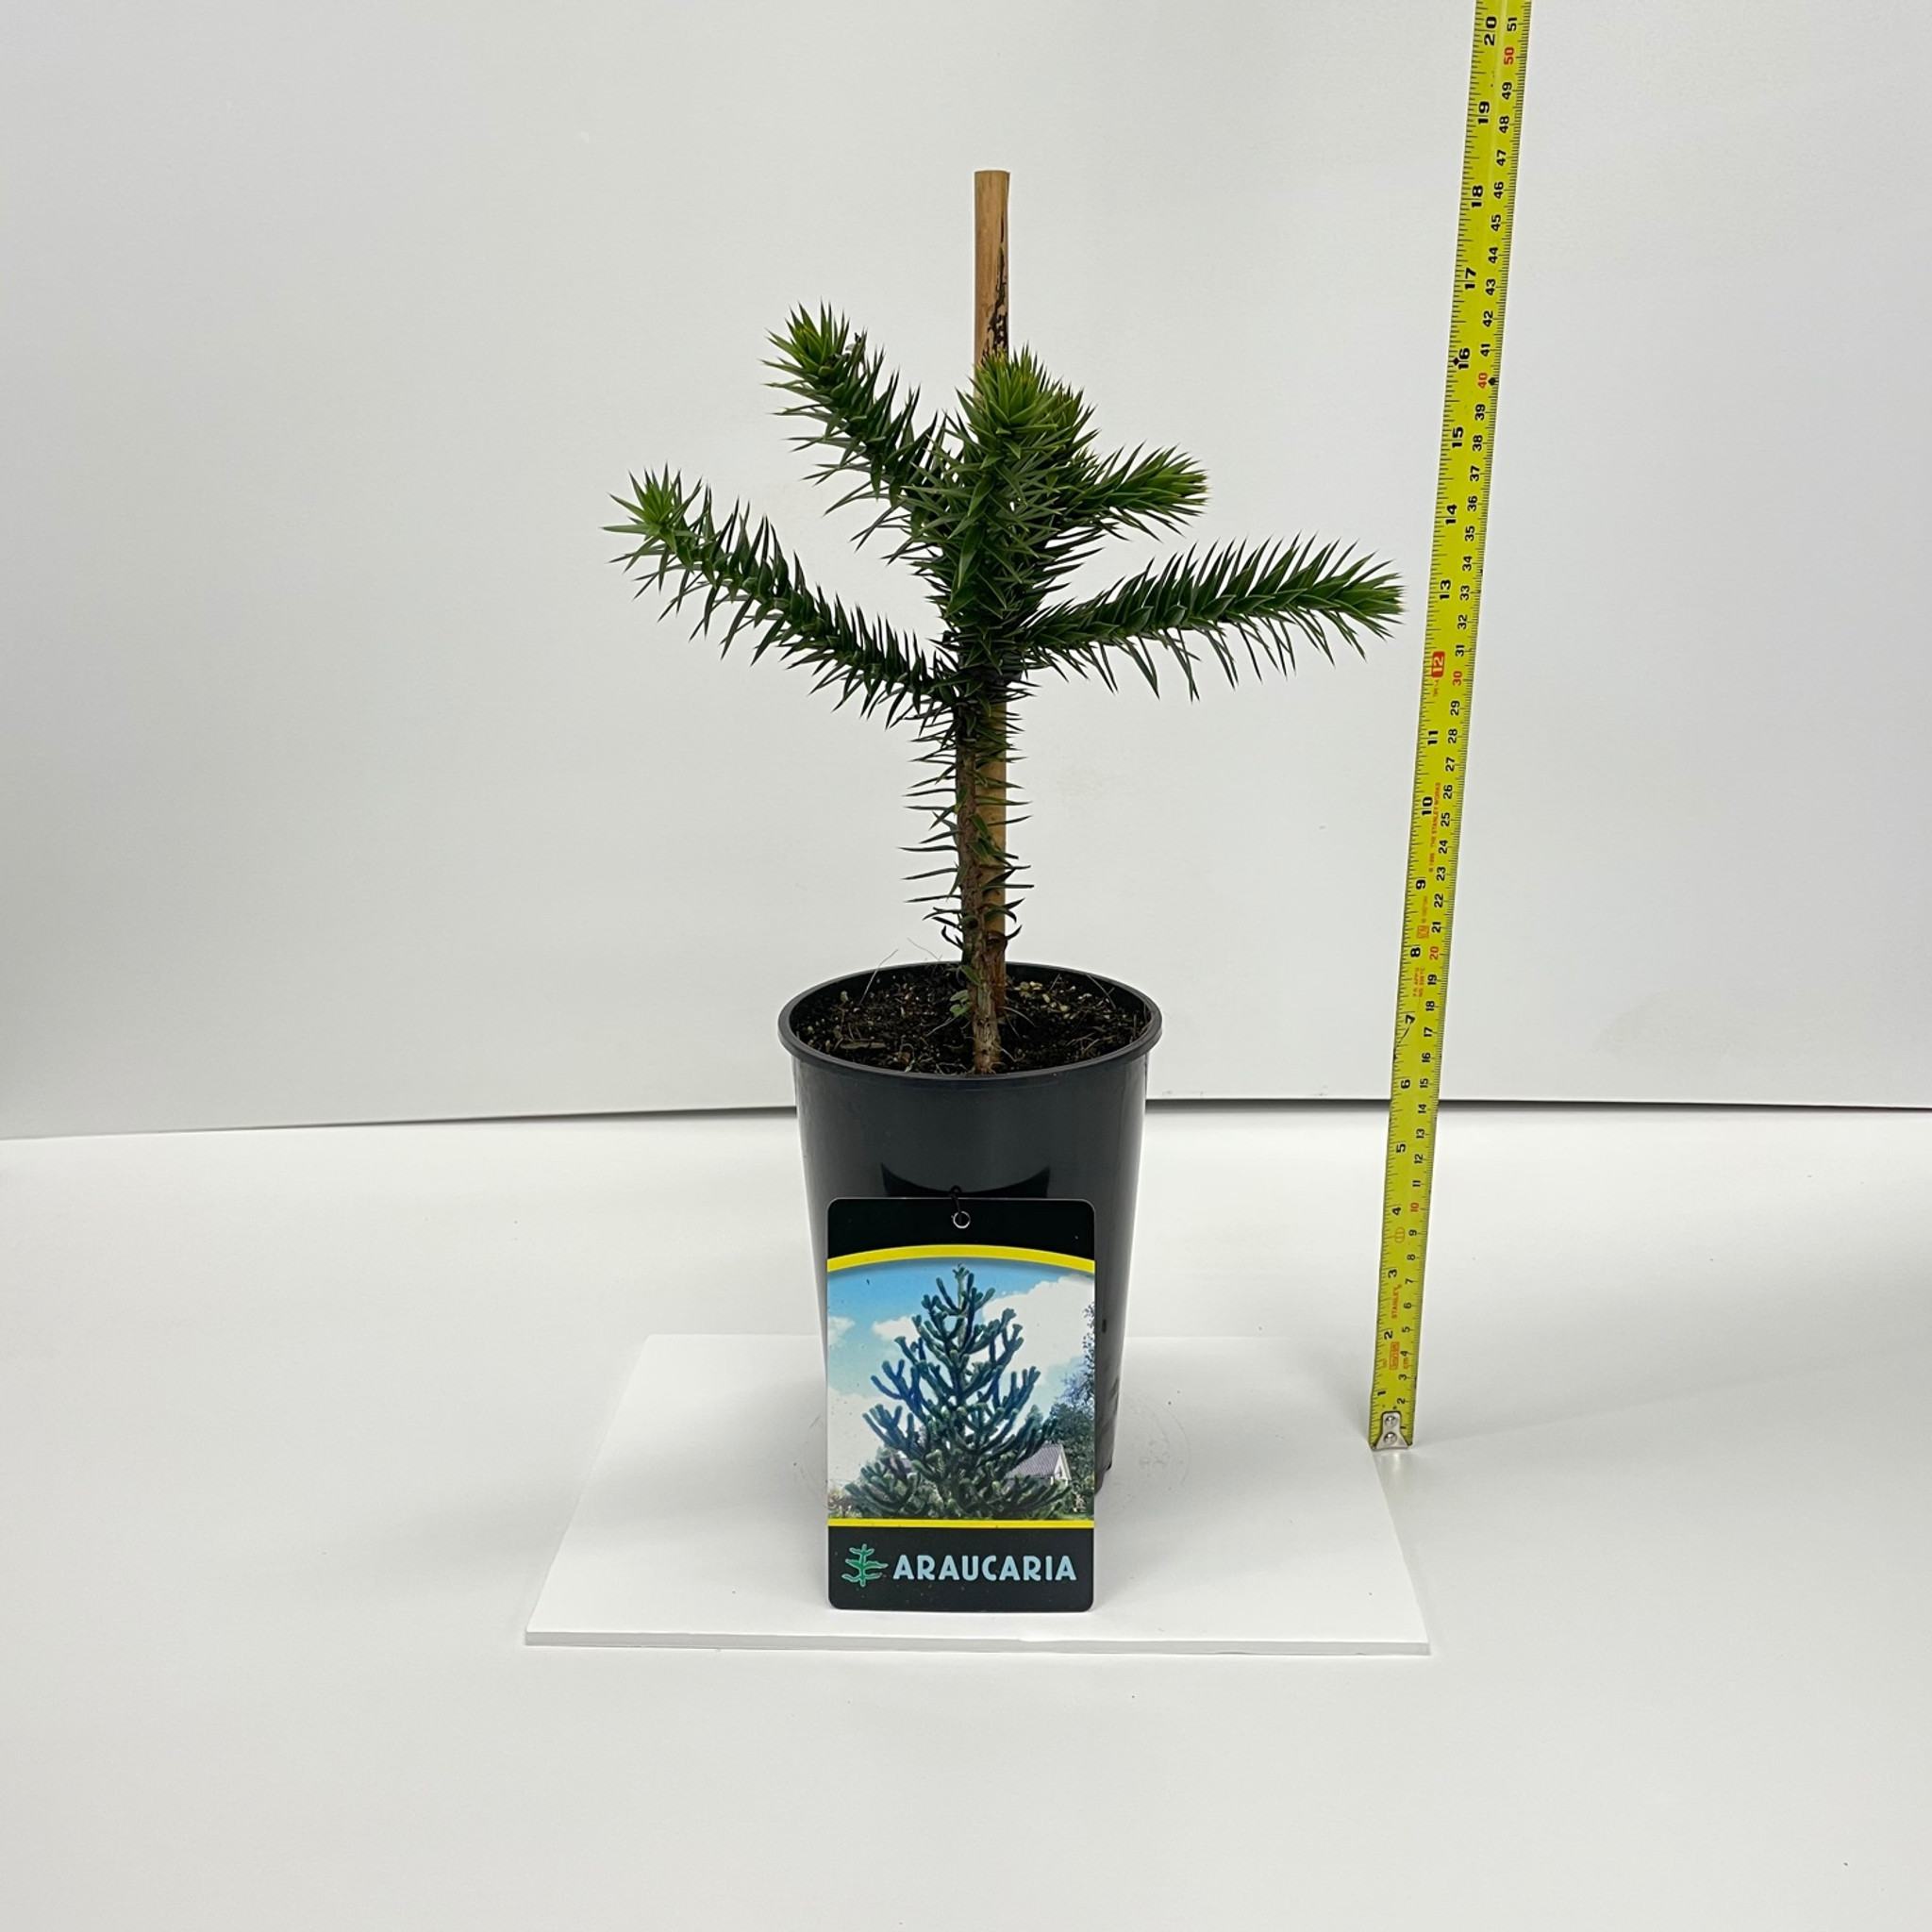 Araucaria Araucana Monkey Puzzle Tree - 40cm Height